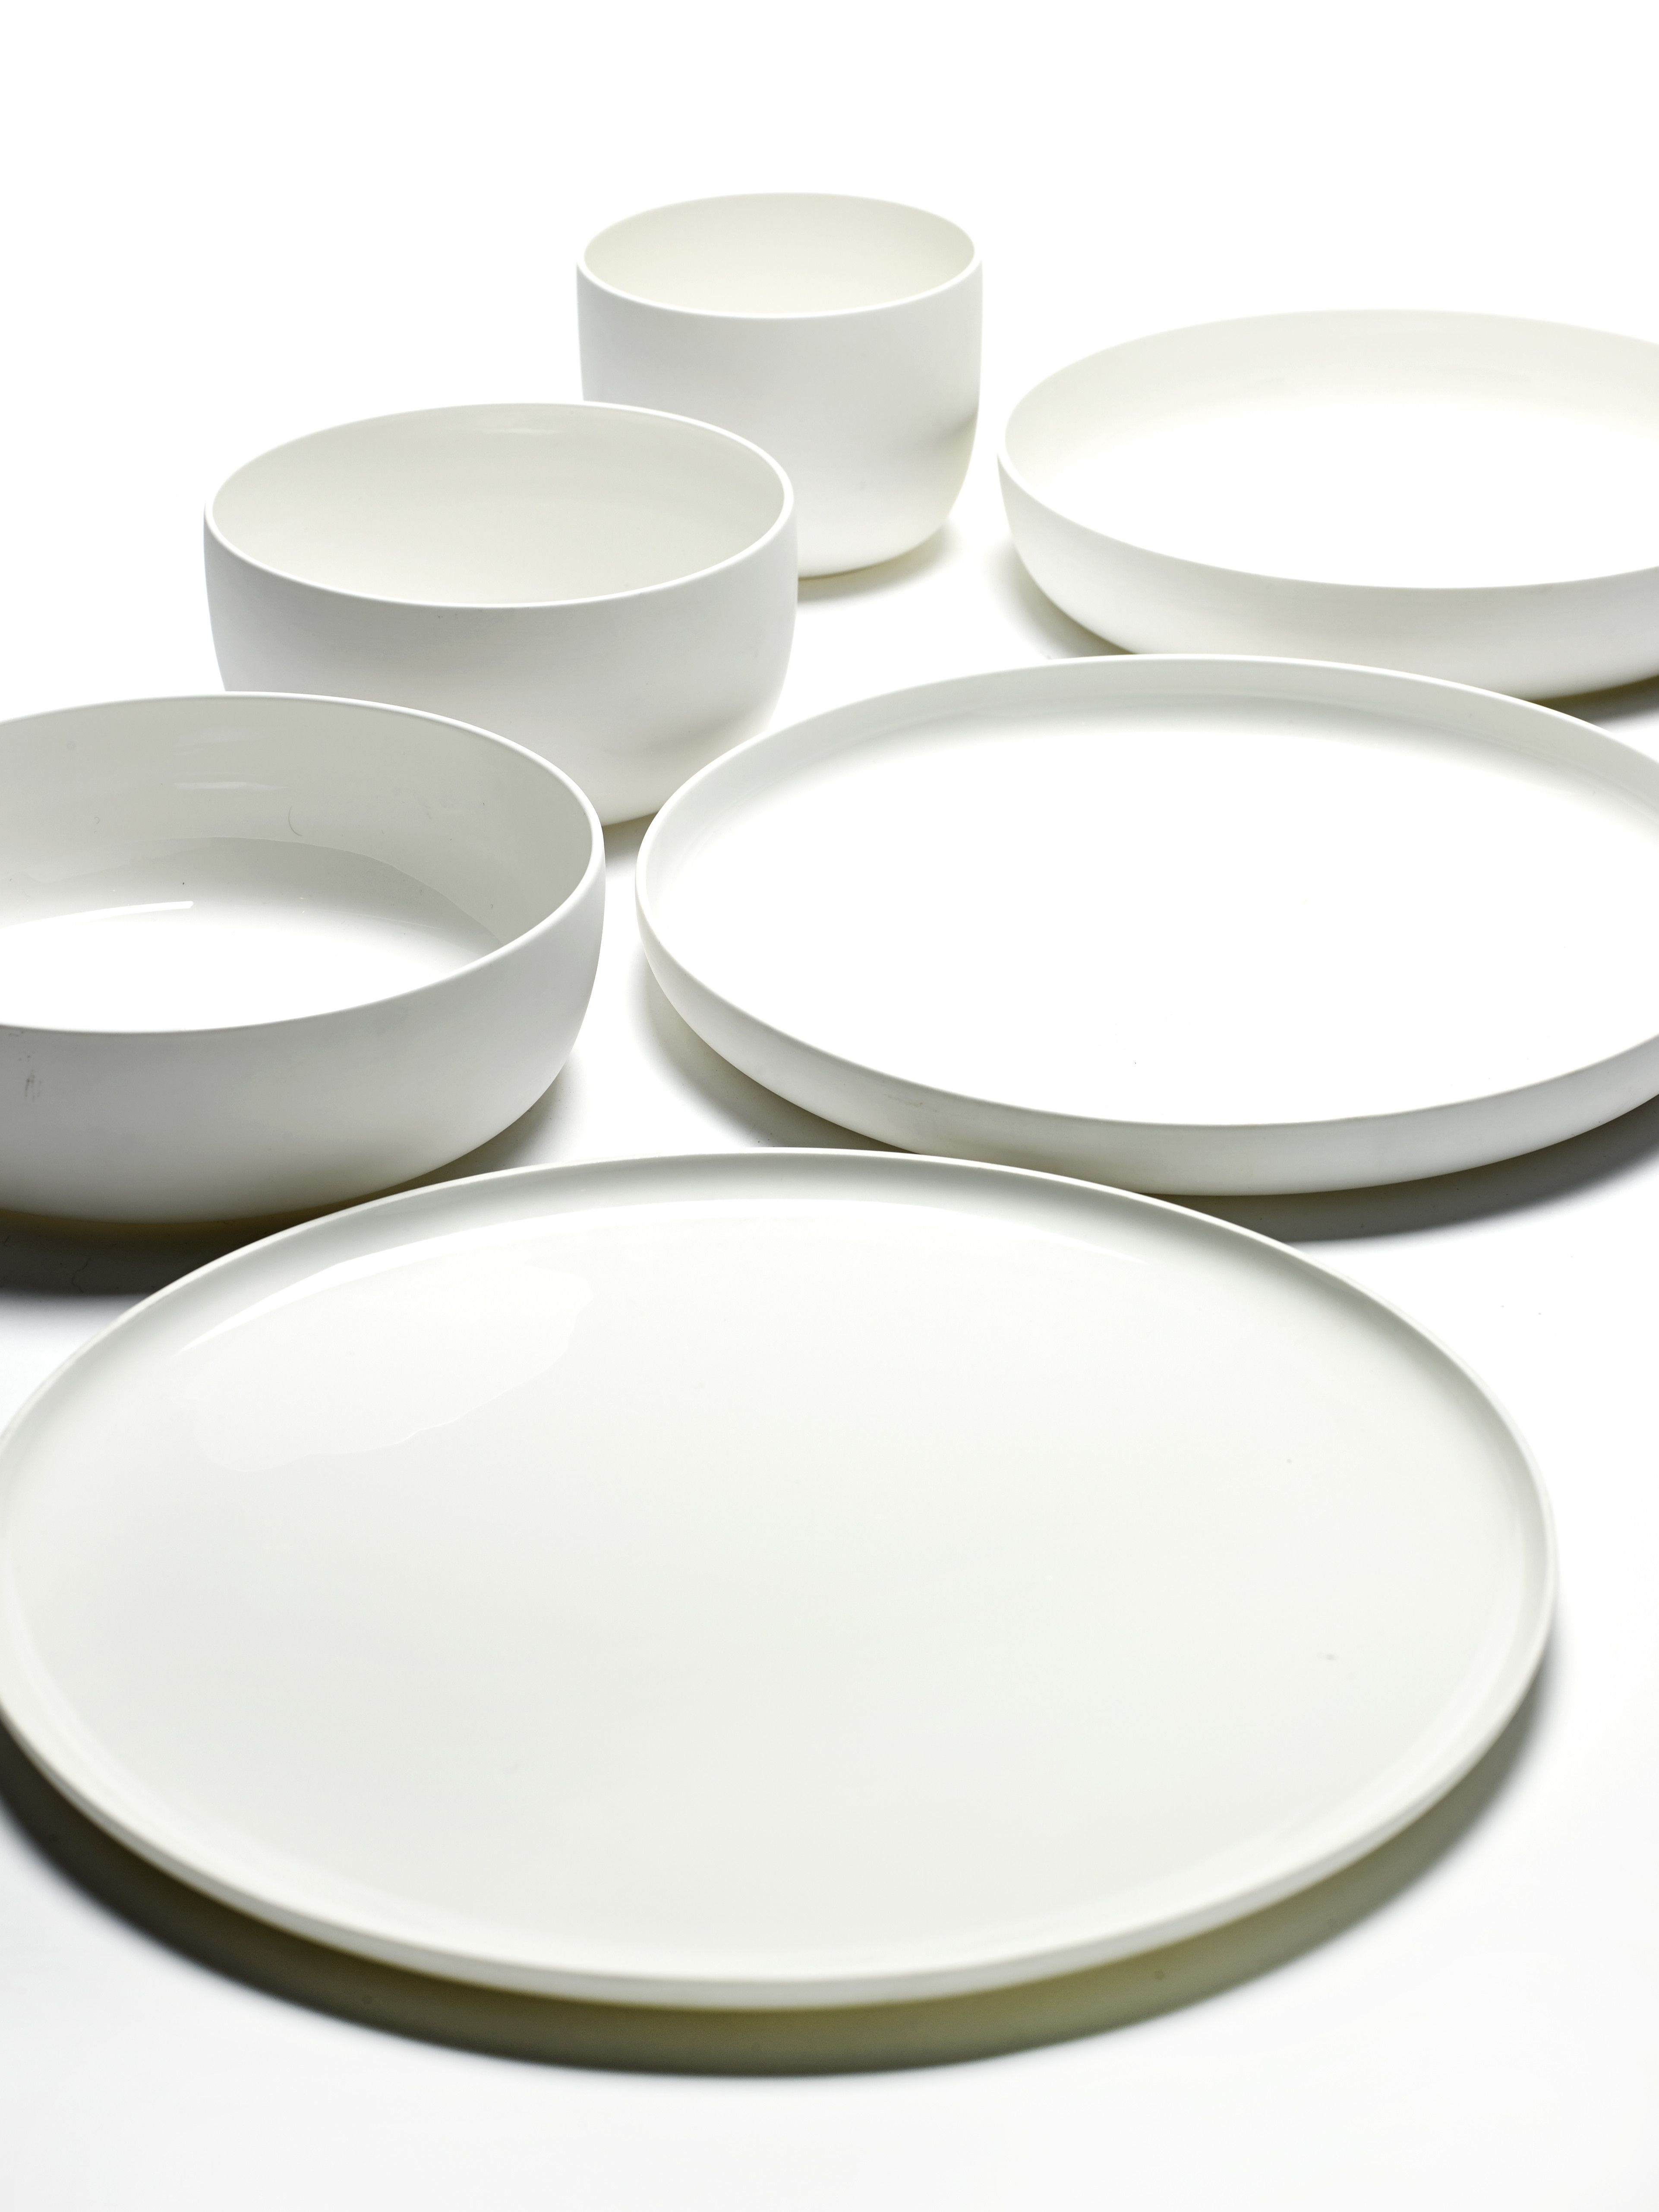 Keramische Platten Zürich Piet Boon White Tableware From Piet Boon By Serax